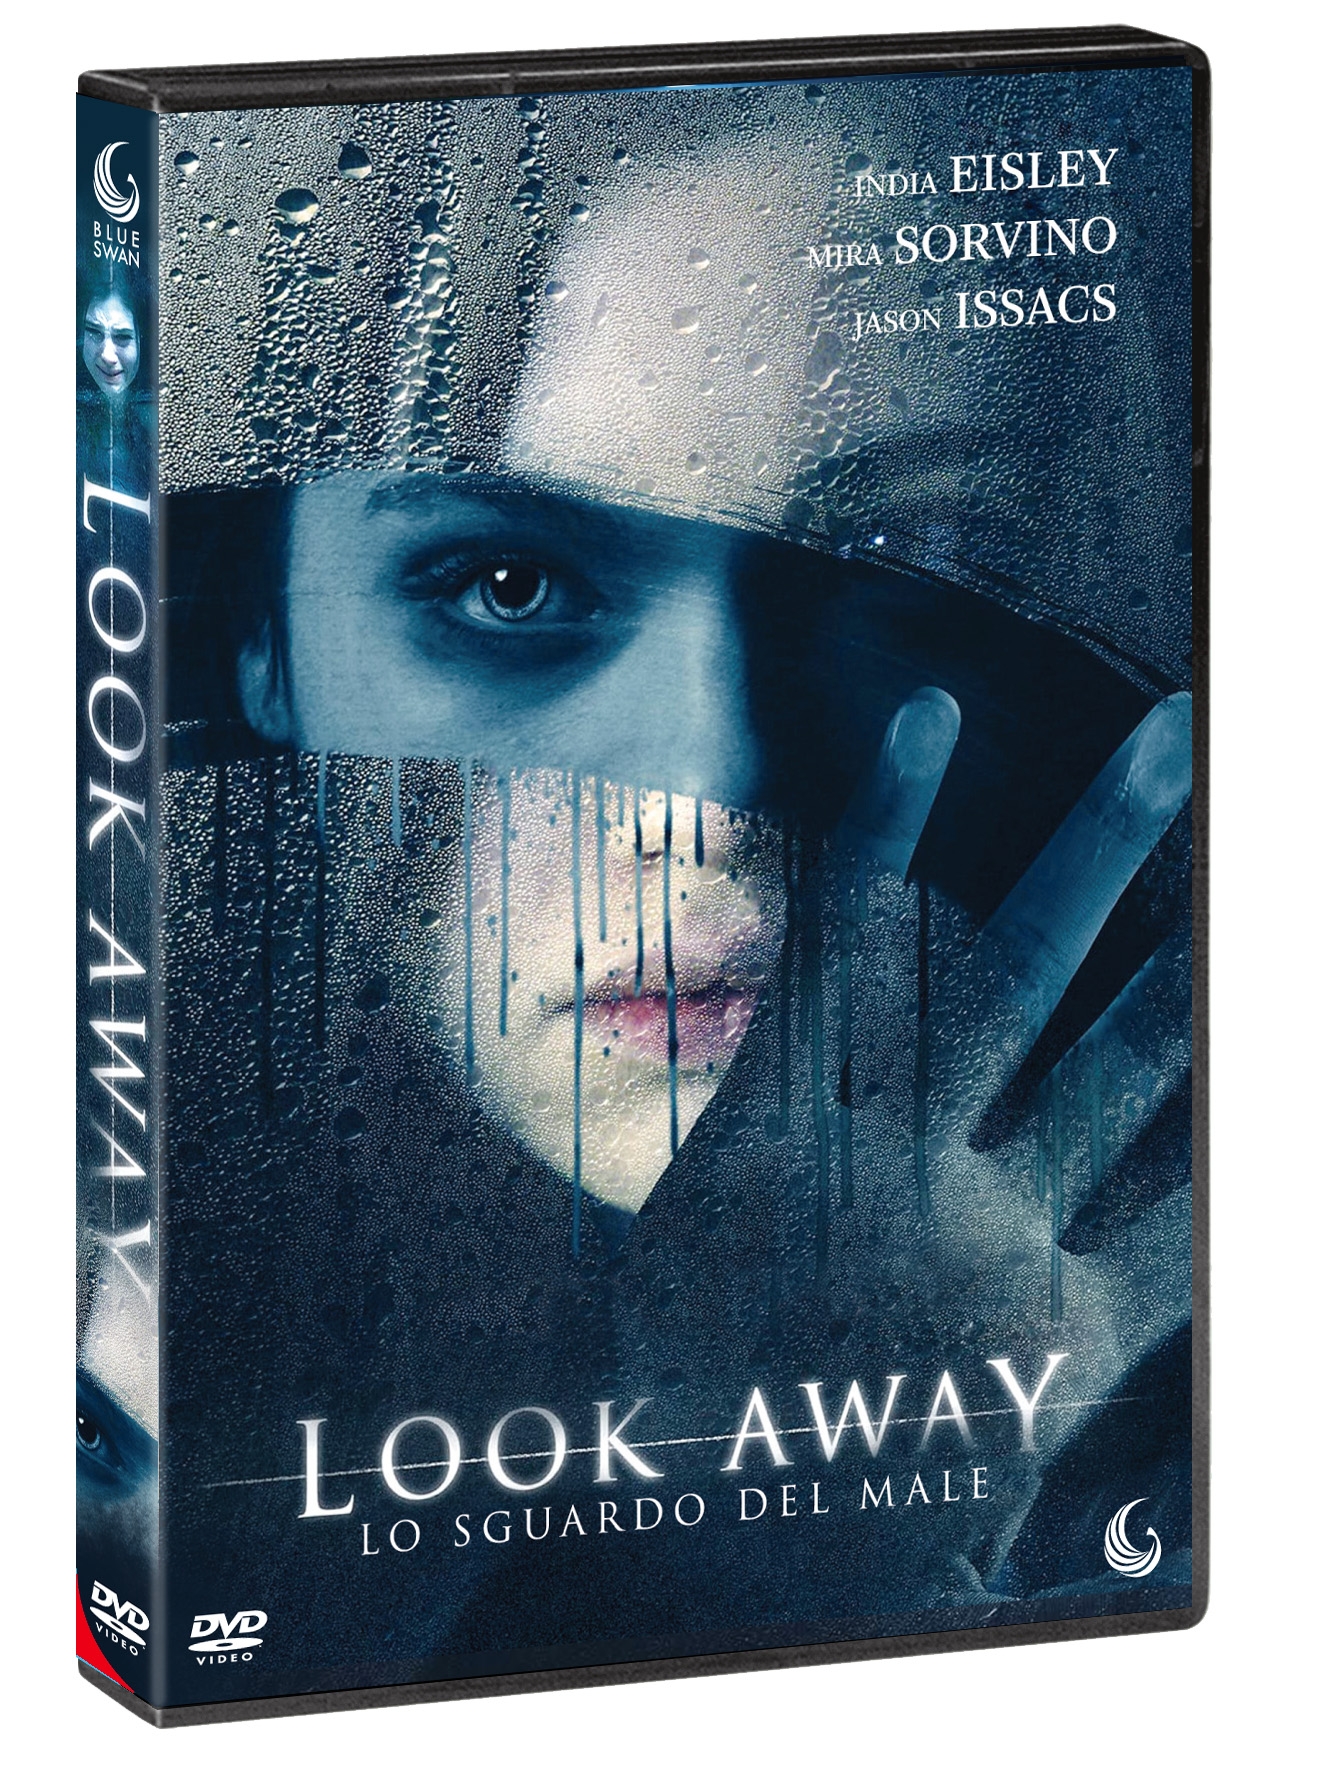 LOOK AWAY - LO SGUARDO DEL MALE (DVD)